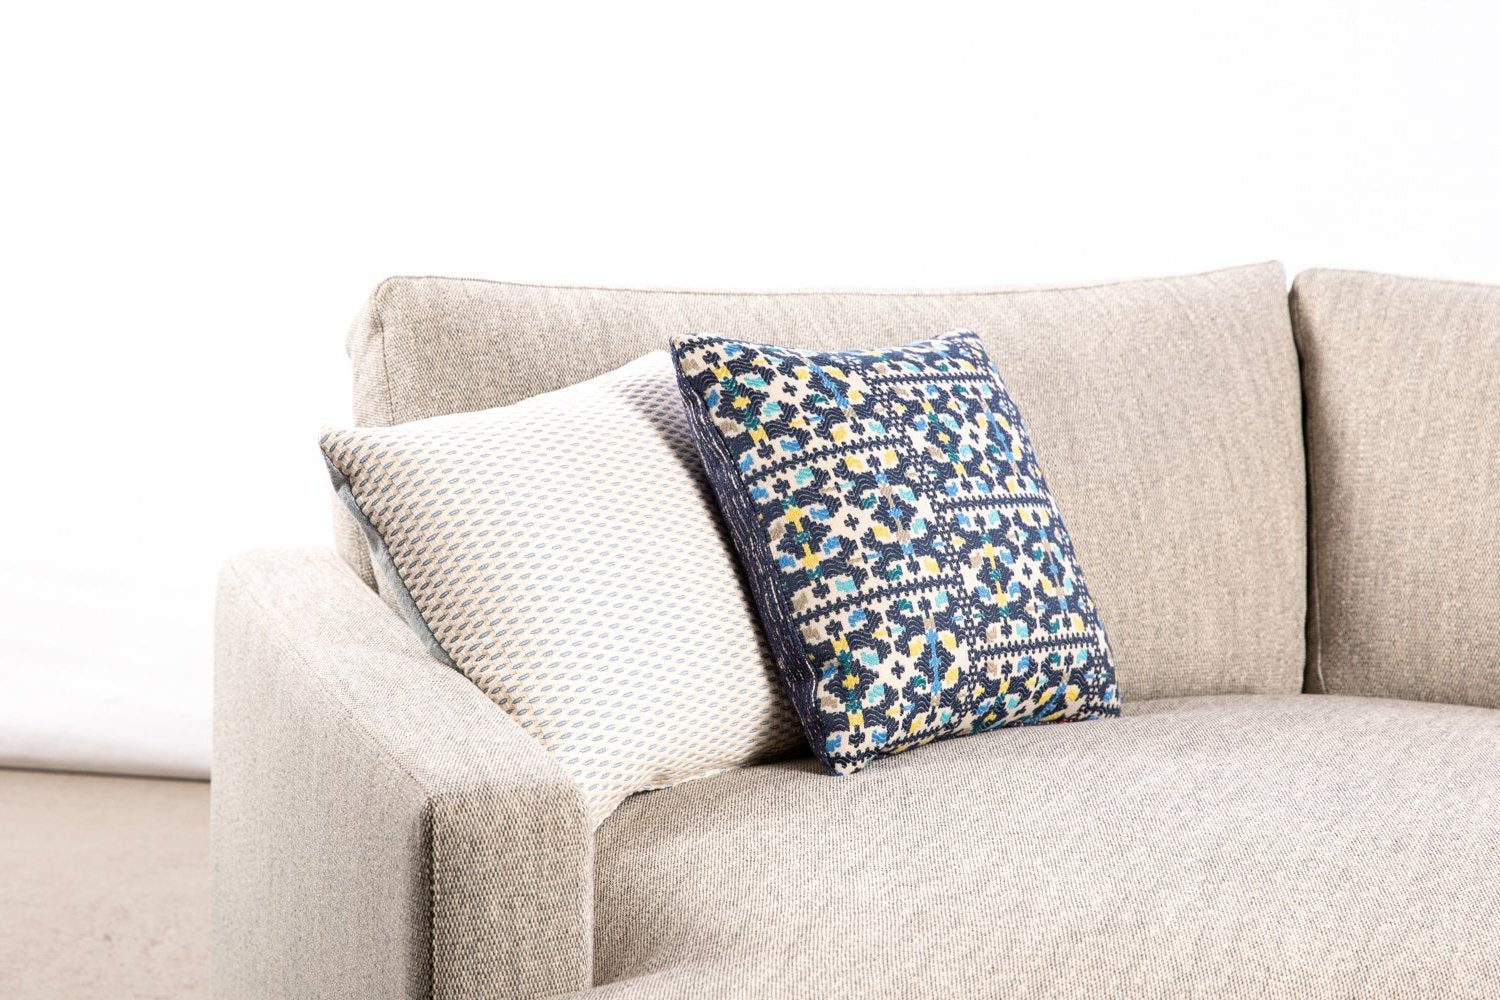 ffabb toss pillows, RADG fabrics, woven small scale pattern